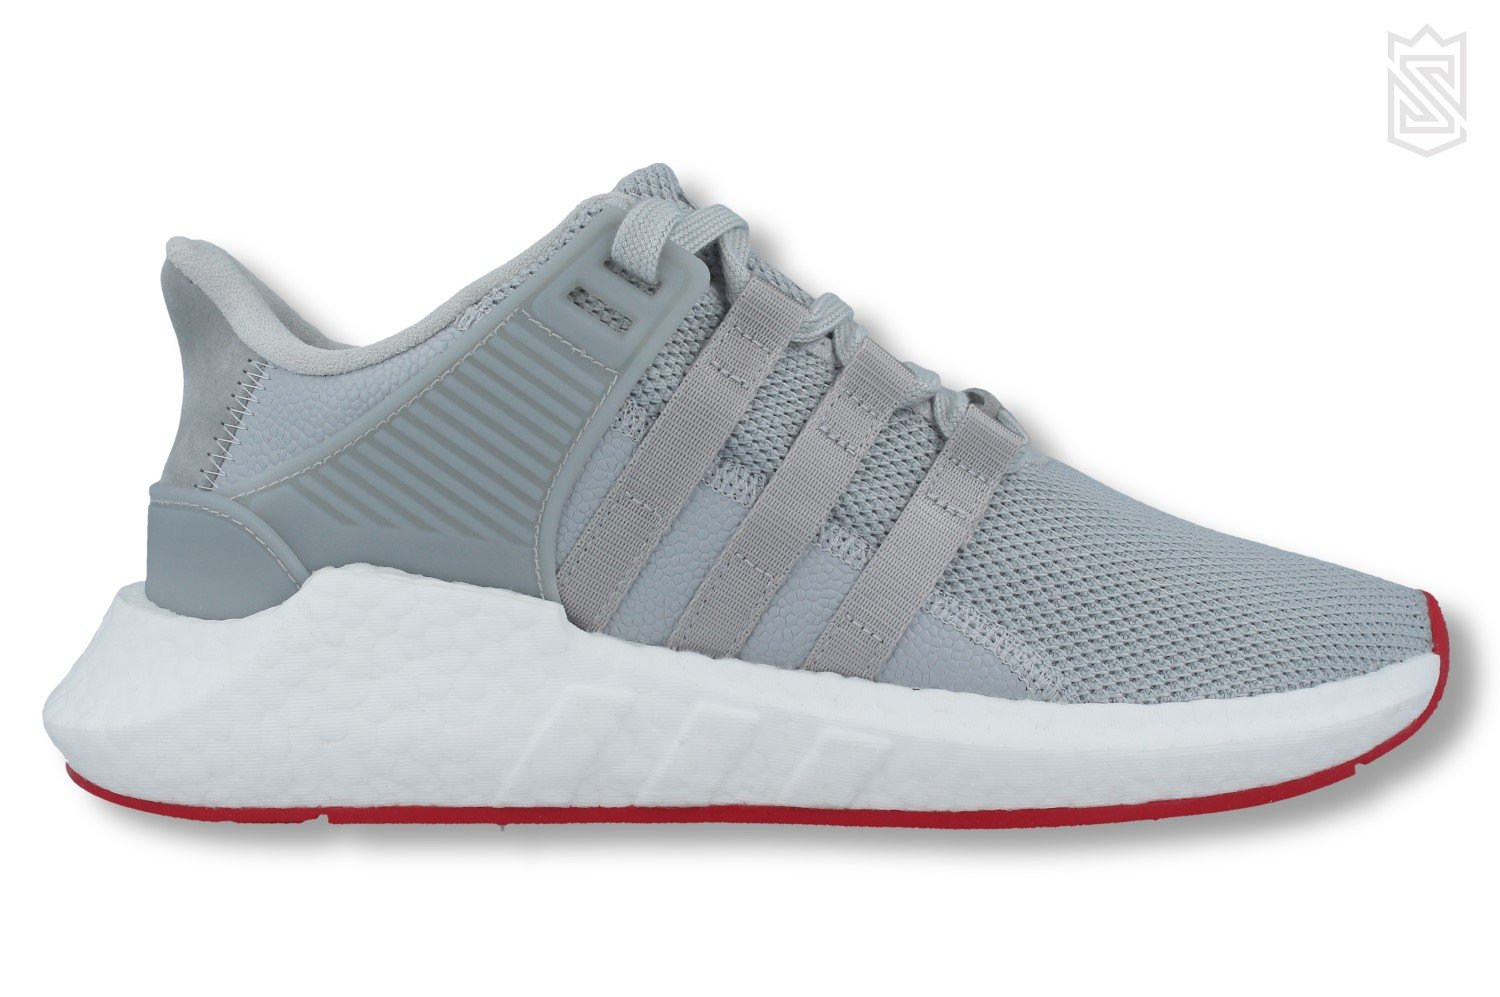 pretty nice 613b9 cb12d Adidas EQT Support  Adidas EQT Support sale